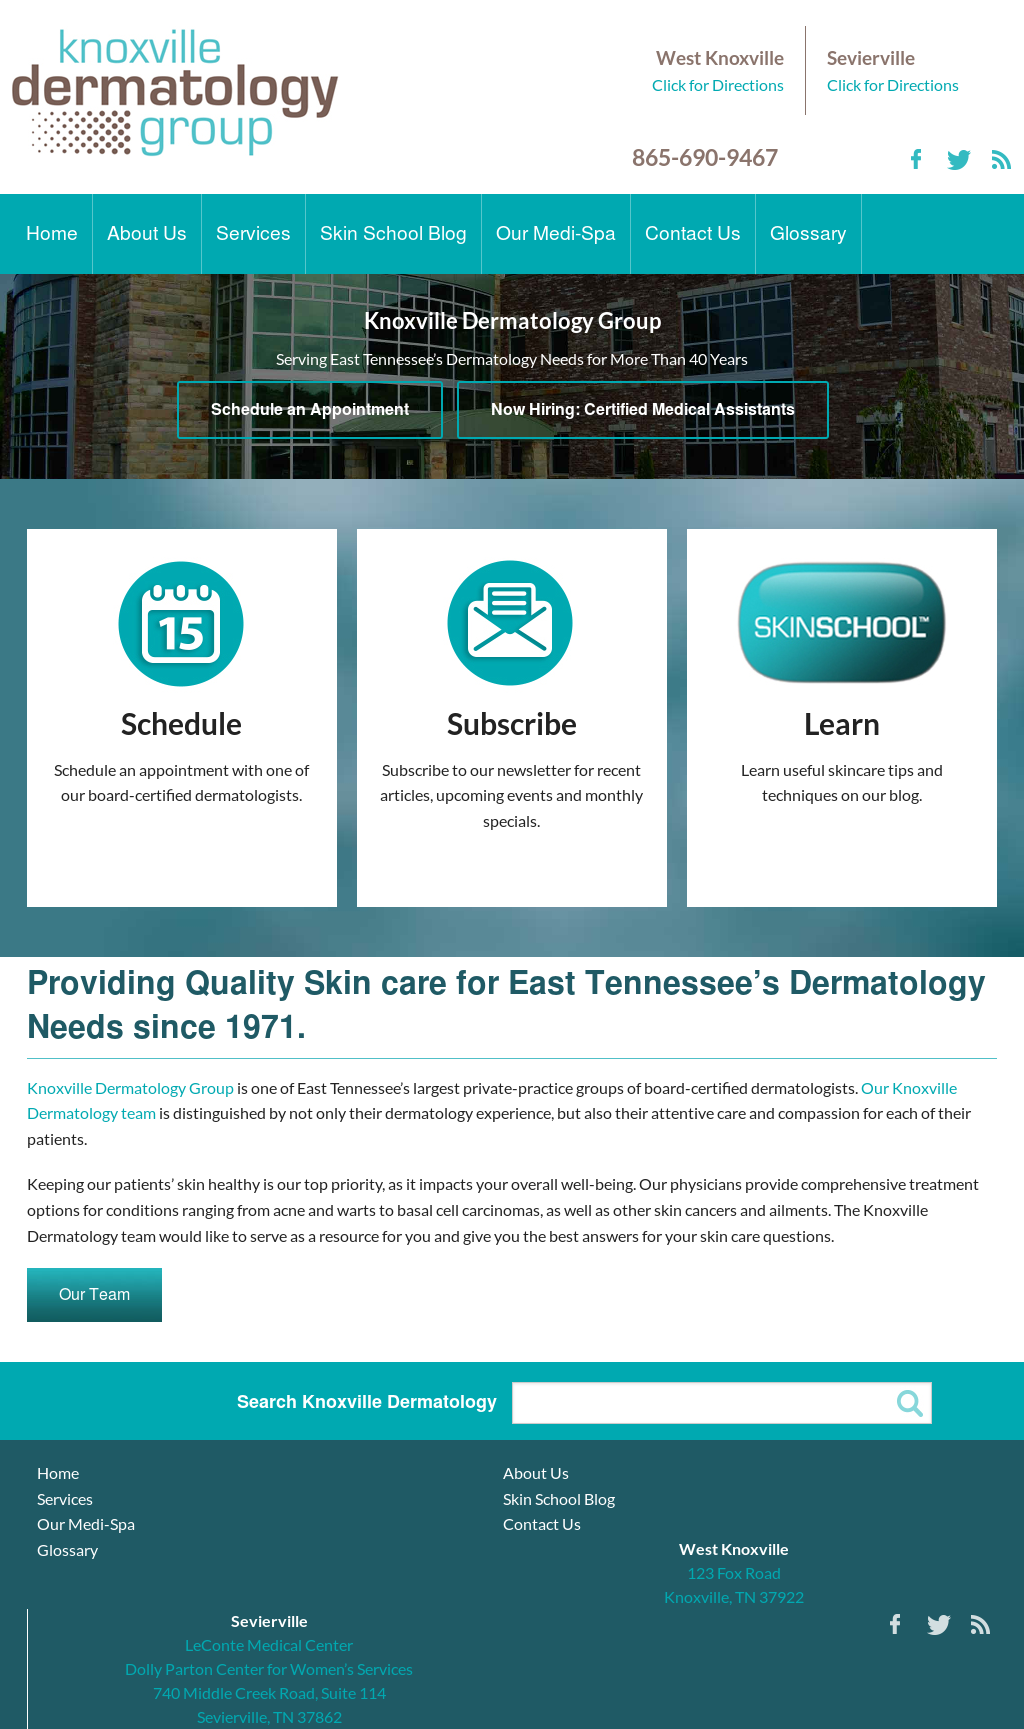 Knoxville Dermatology Group Competitors, Revenue and